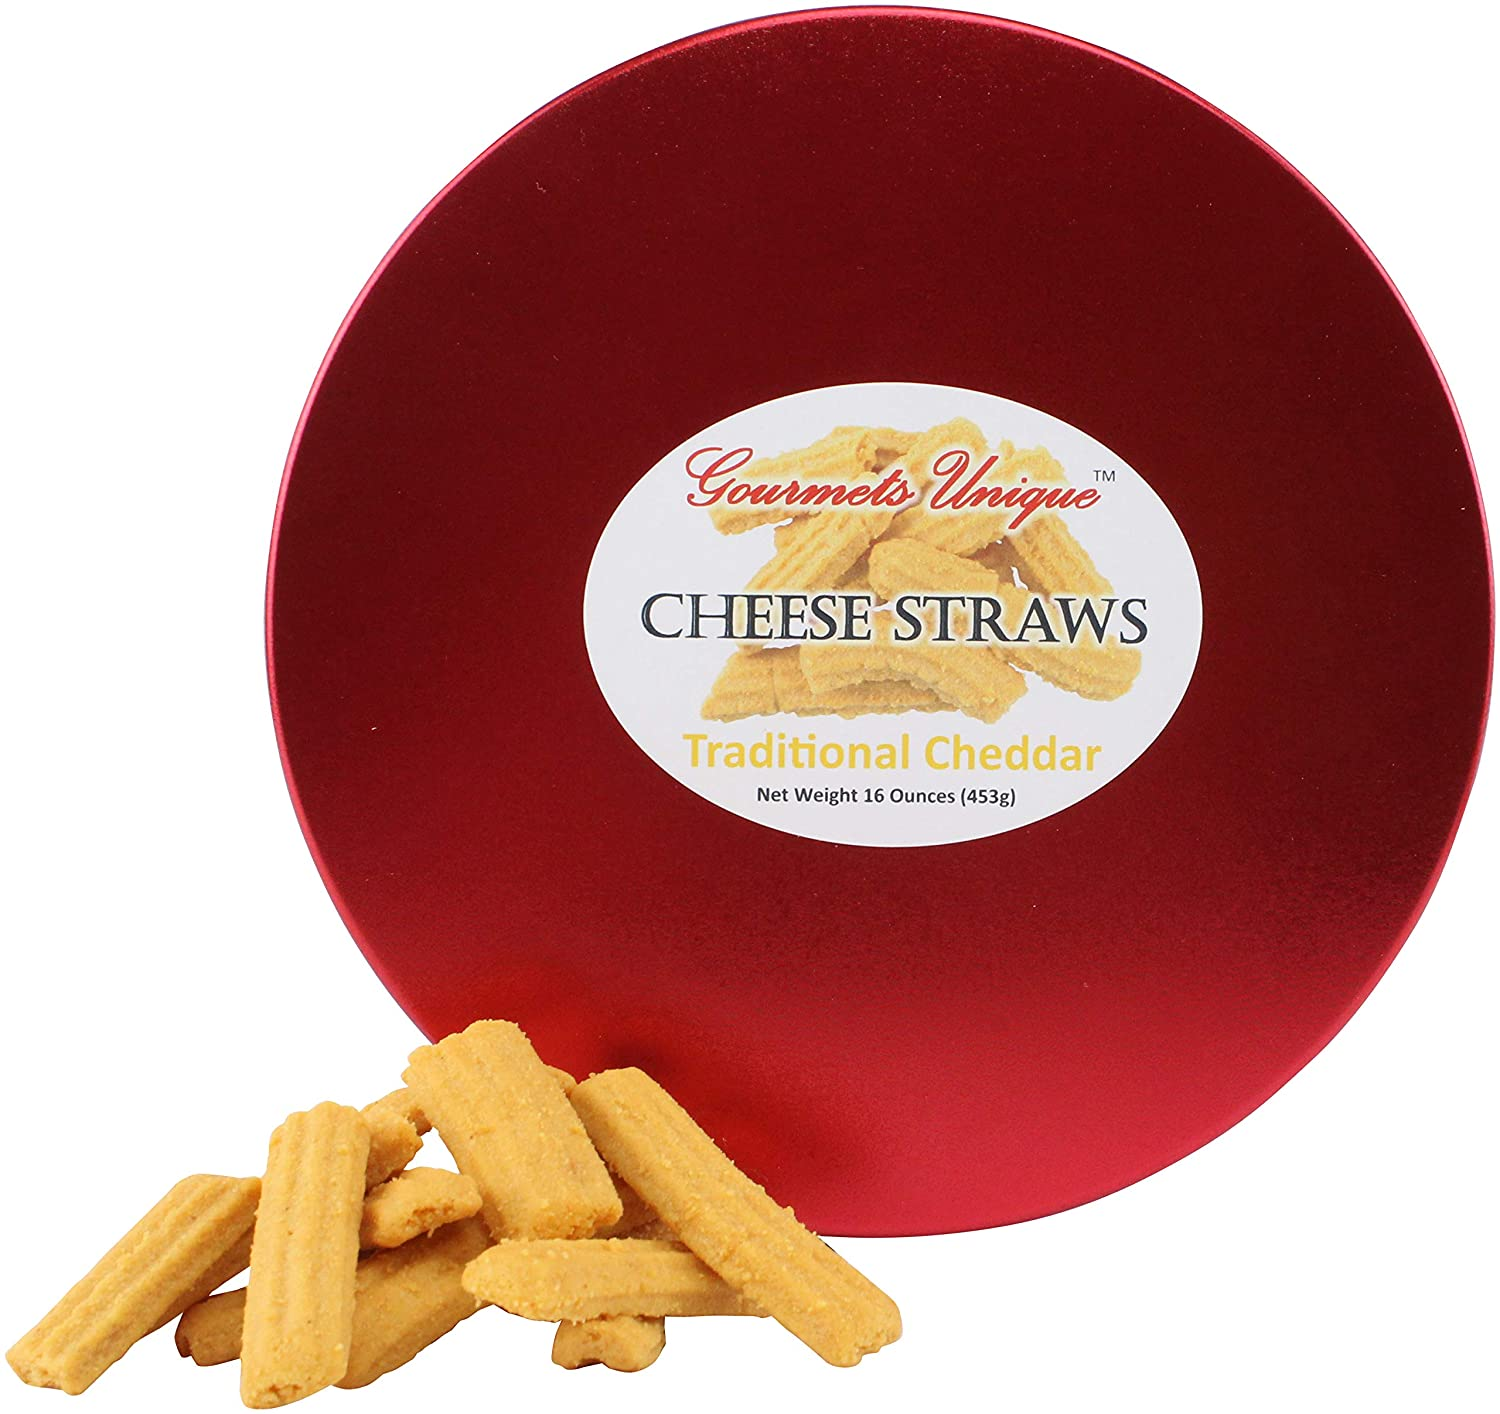 Southern Gourmet Cheese Straws, Traditional Cheddar, 1 Pound in Tin